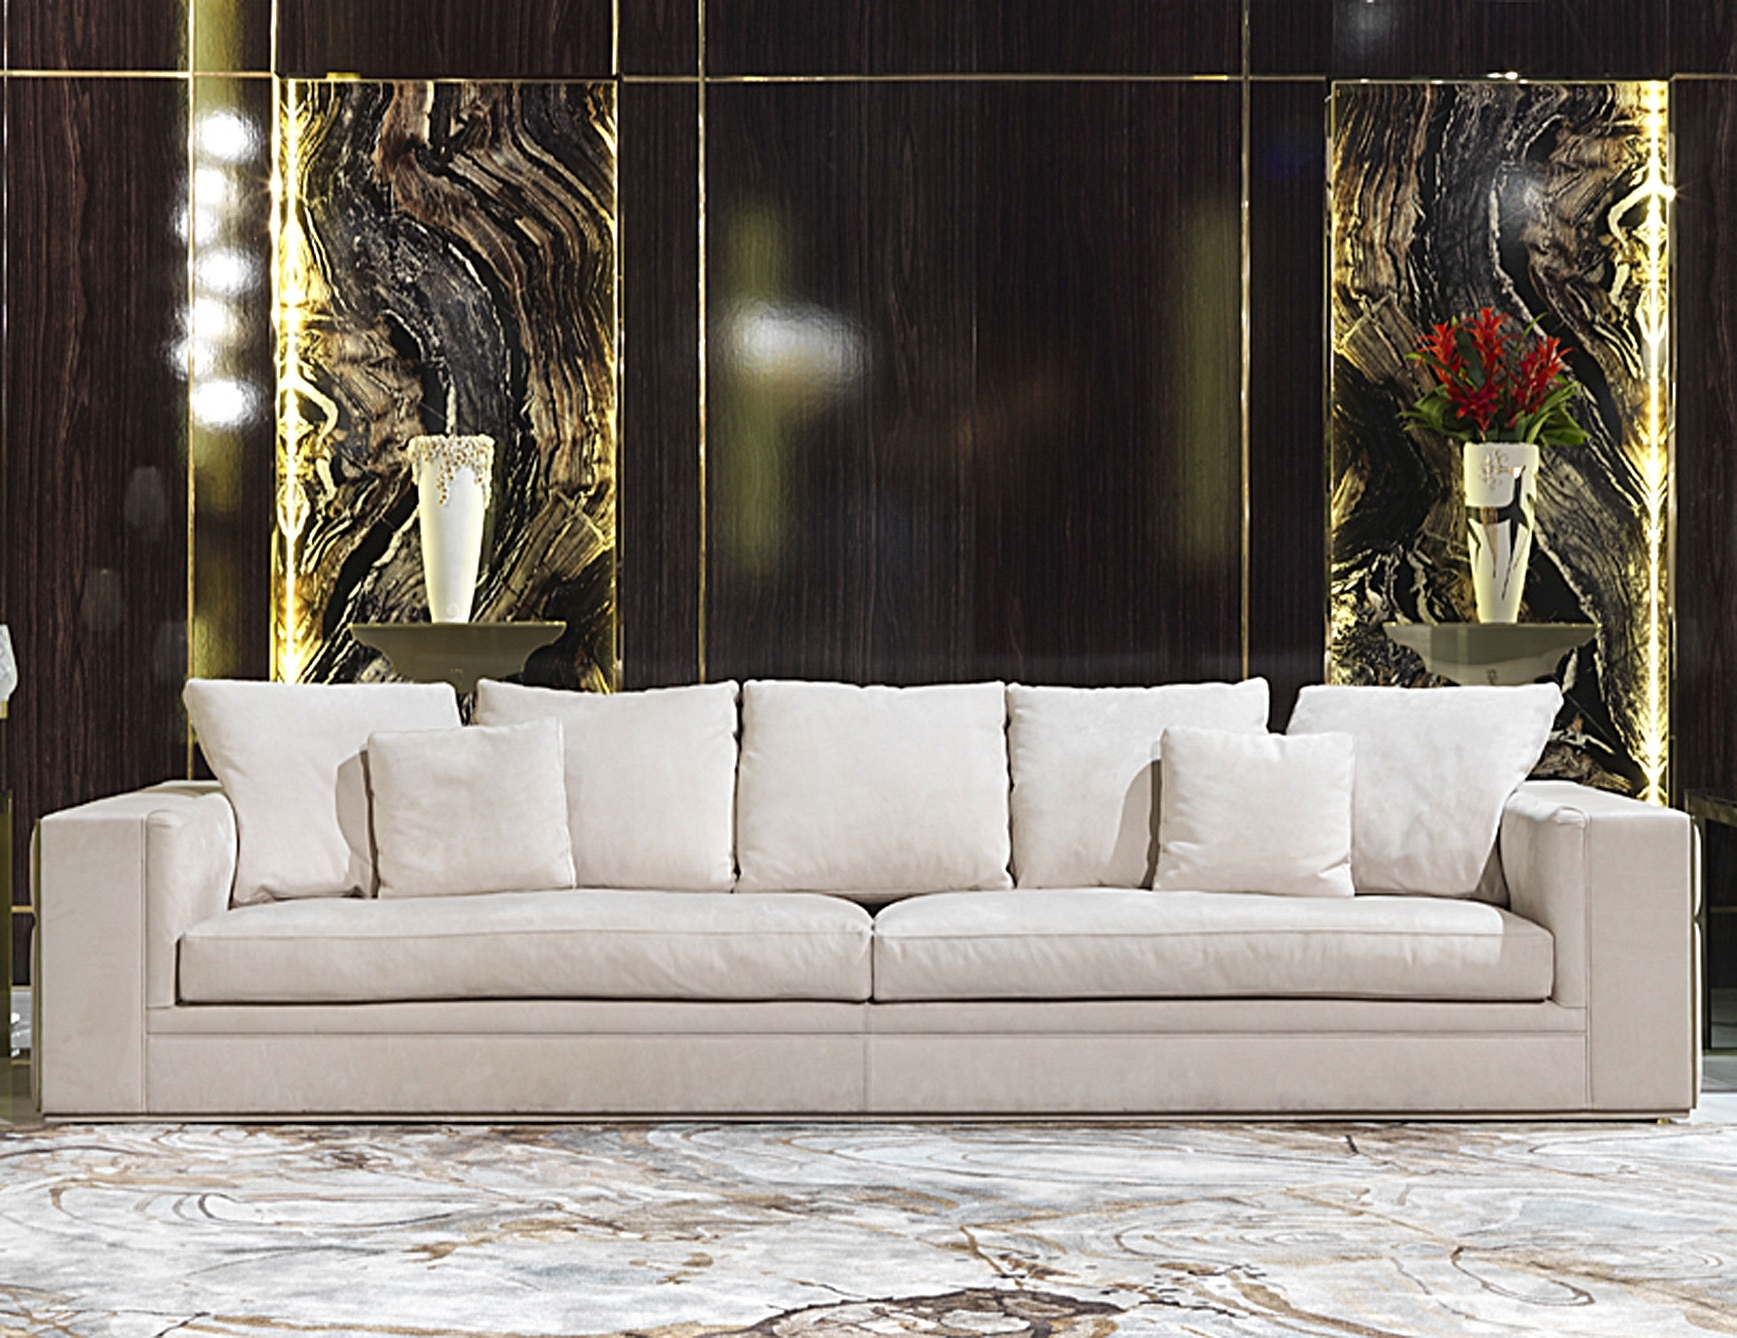 Well Liked Nella Vetrina Visionnaire Ipe Cavalli Babylon Luxury Italian Sofa Within Luxury Sofas (View 2 of 15)